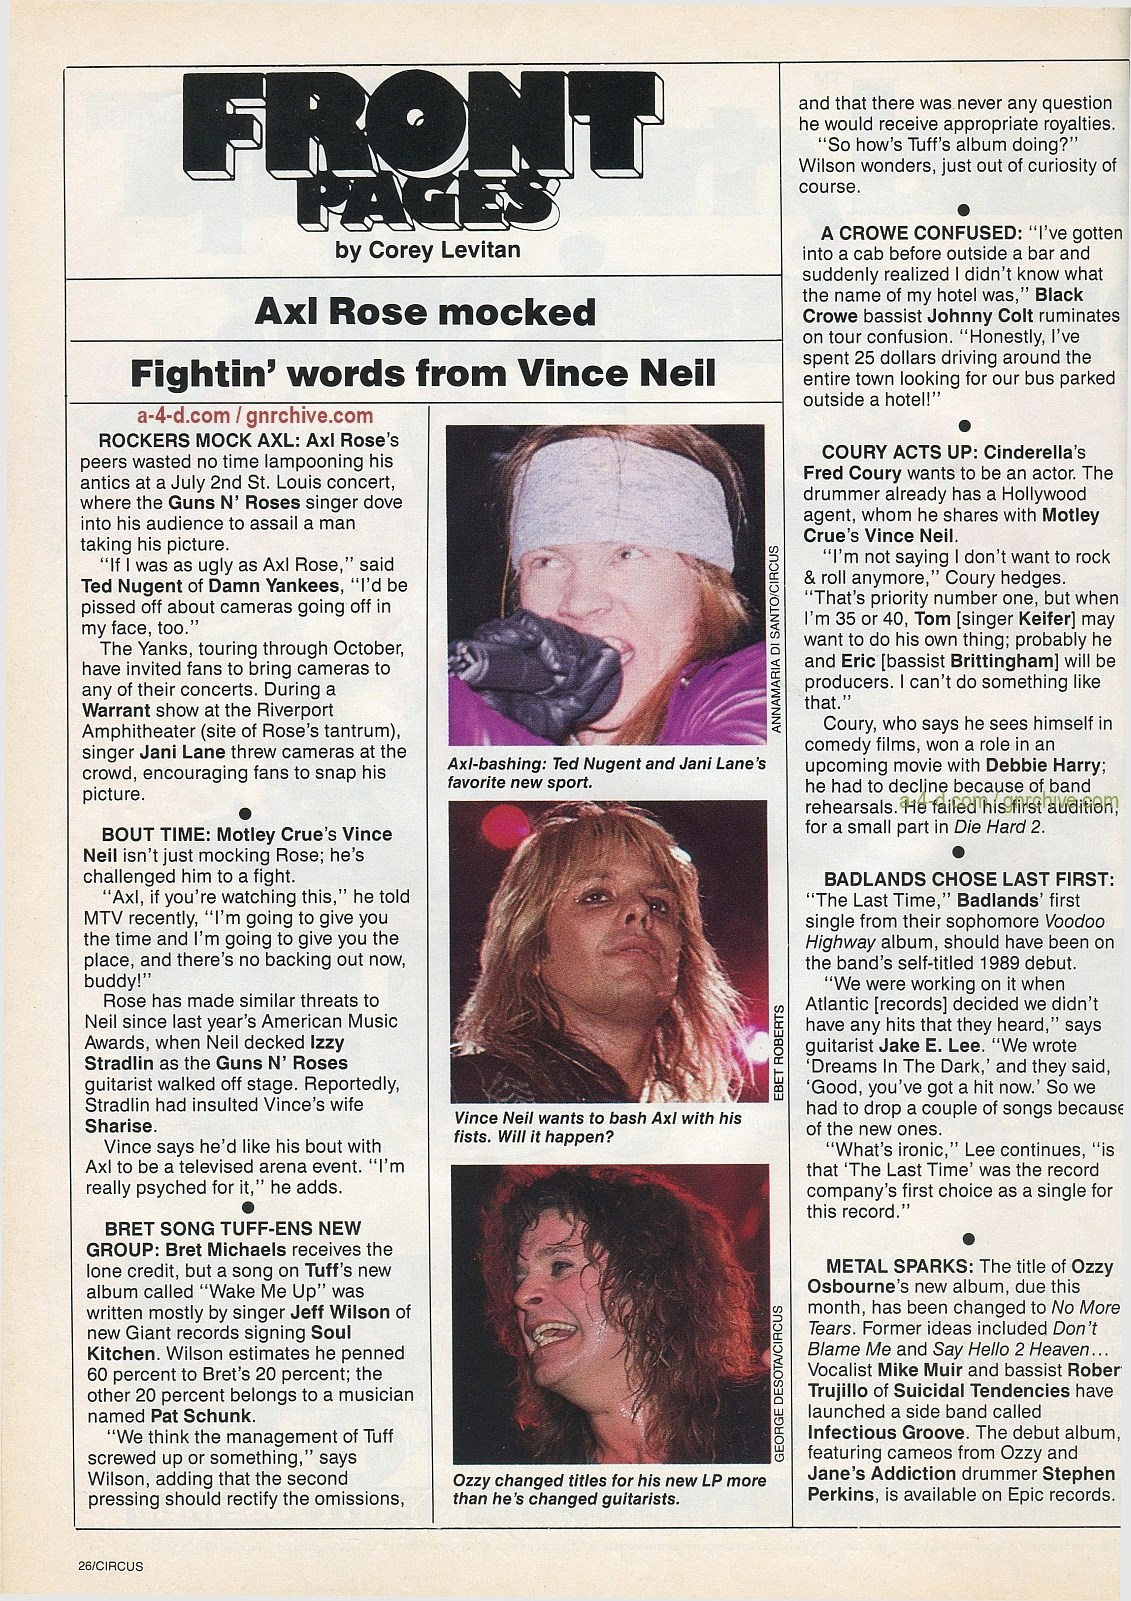 1991.10.31 - Circus - Axl Rose mocked/Fightin' words from Vince Neil 1991-110